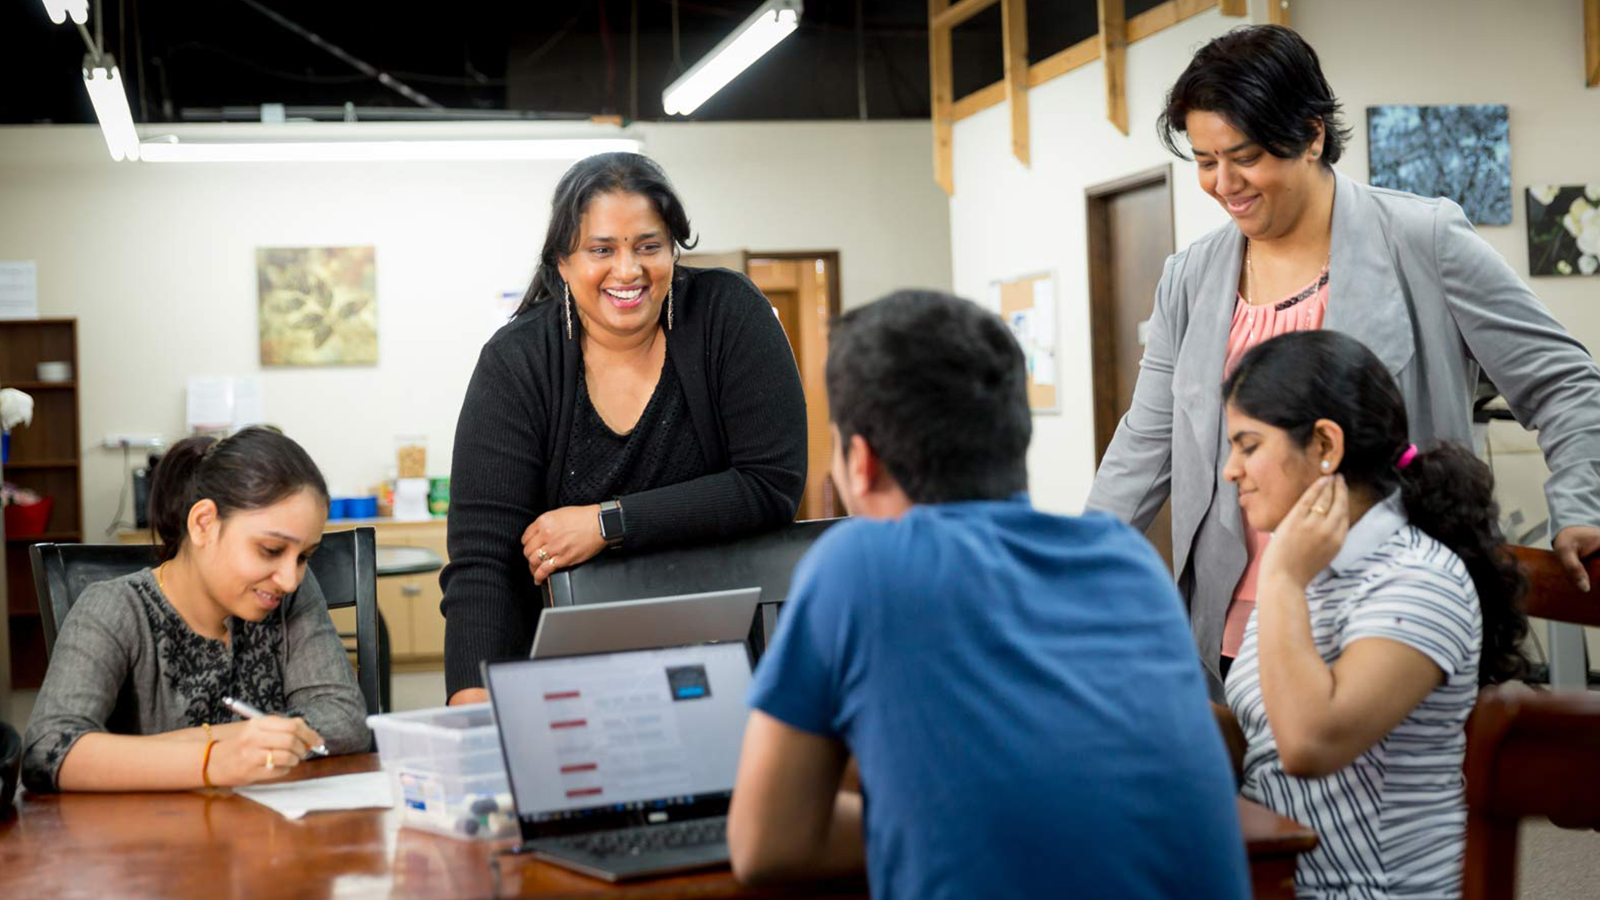 Kal Viswanathan and her students; Photo by Scott Eklund/Red Box Pictures